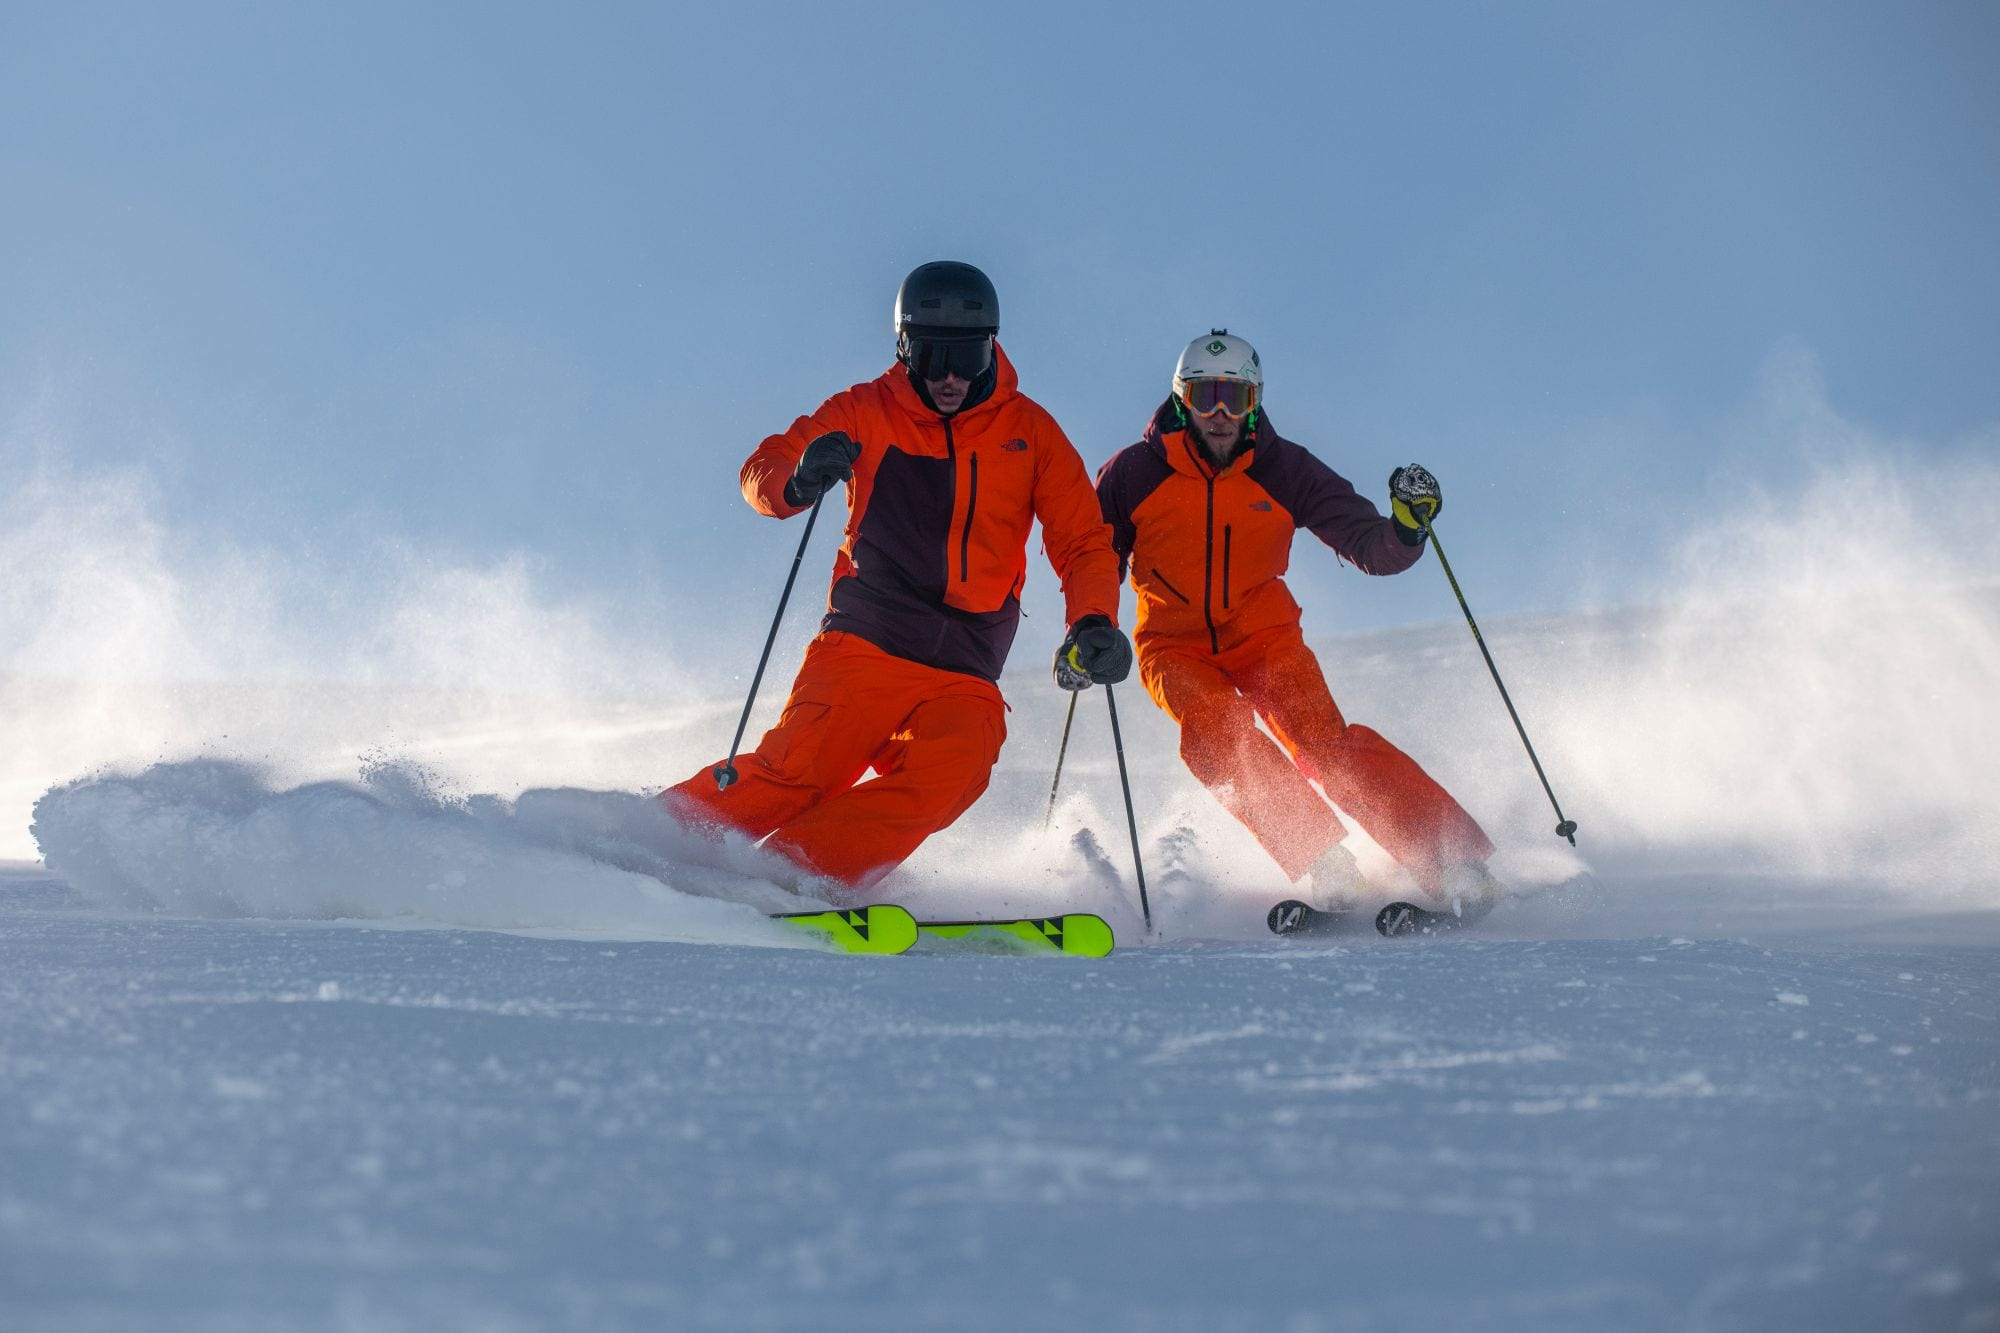 5 Tips for Beginner Skiers